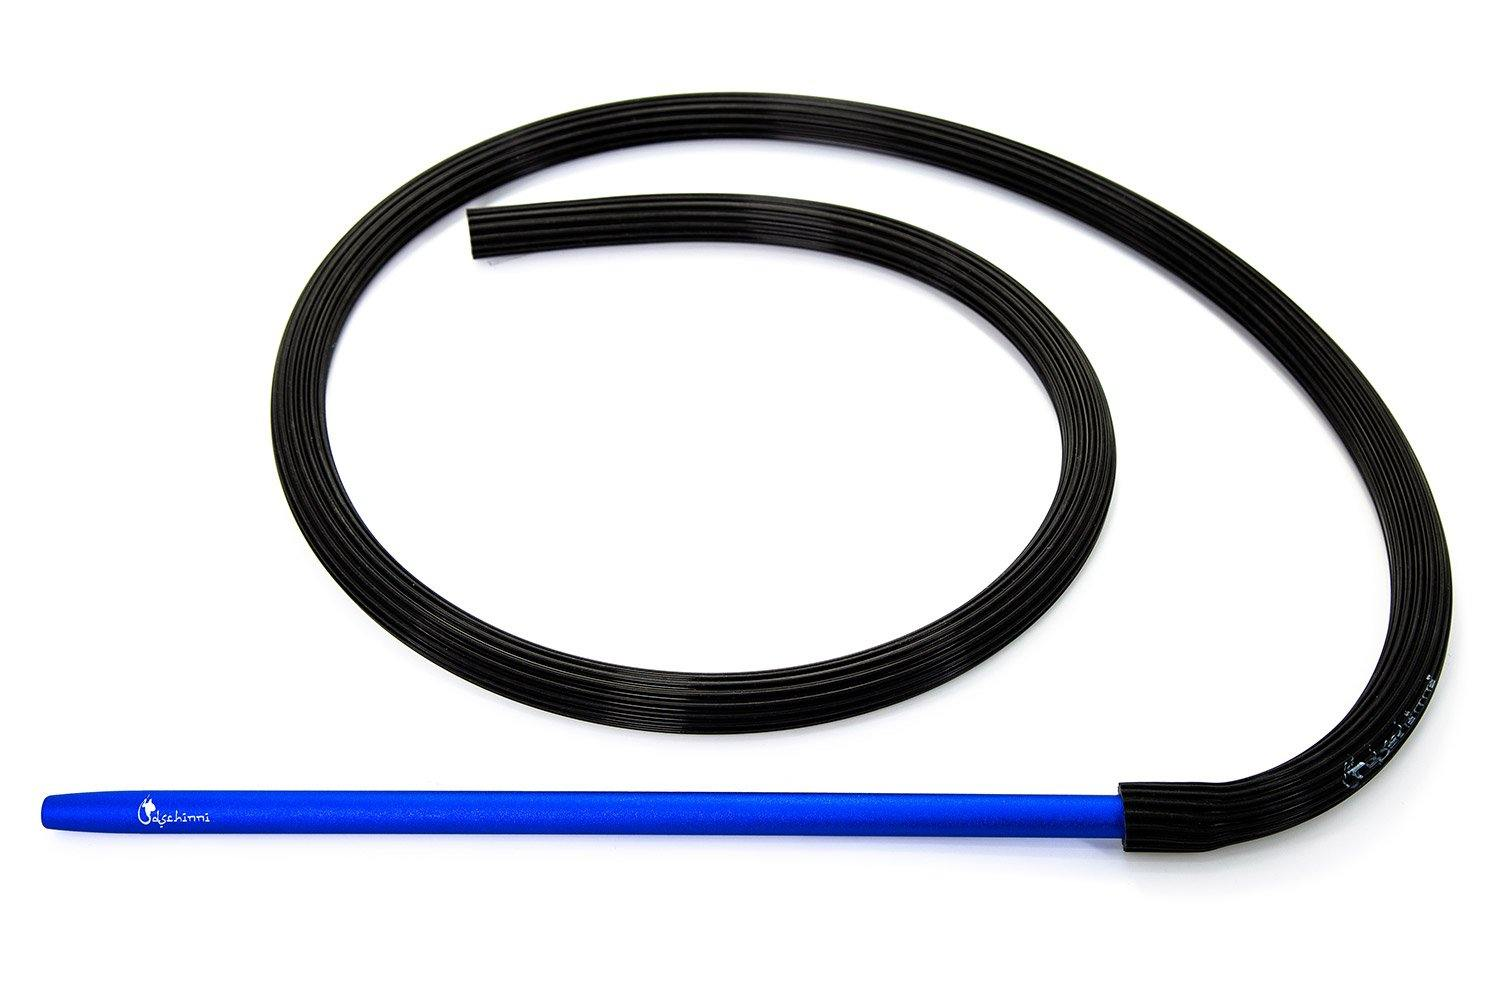 Dschinni Candyhose Black with Aluminium Blue Mouthpiece